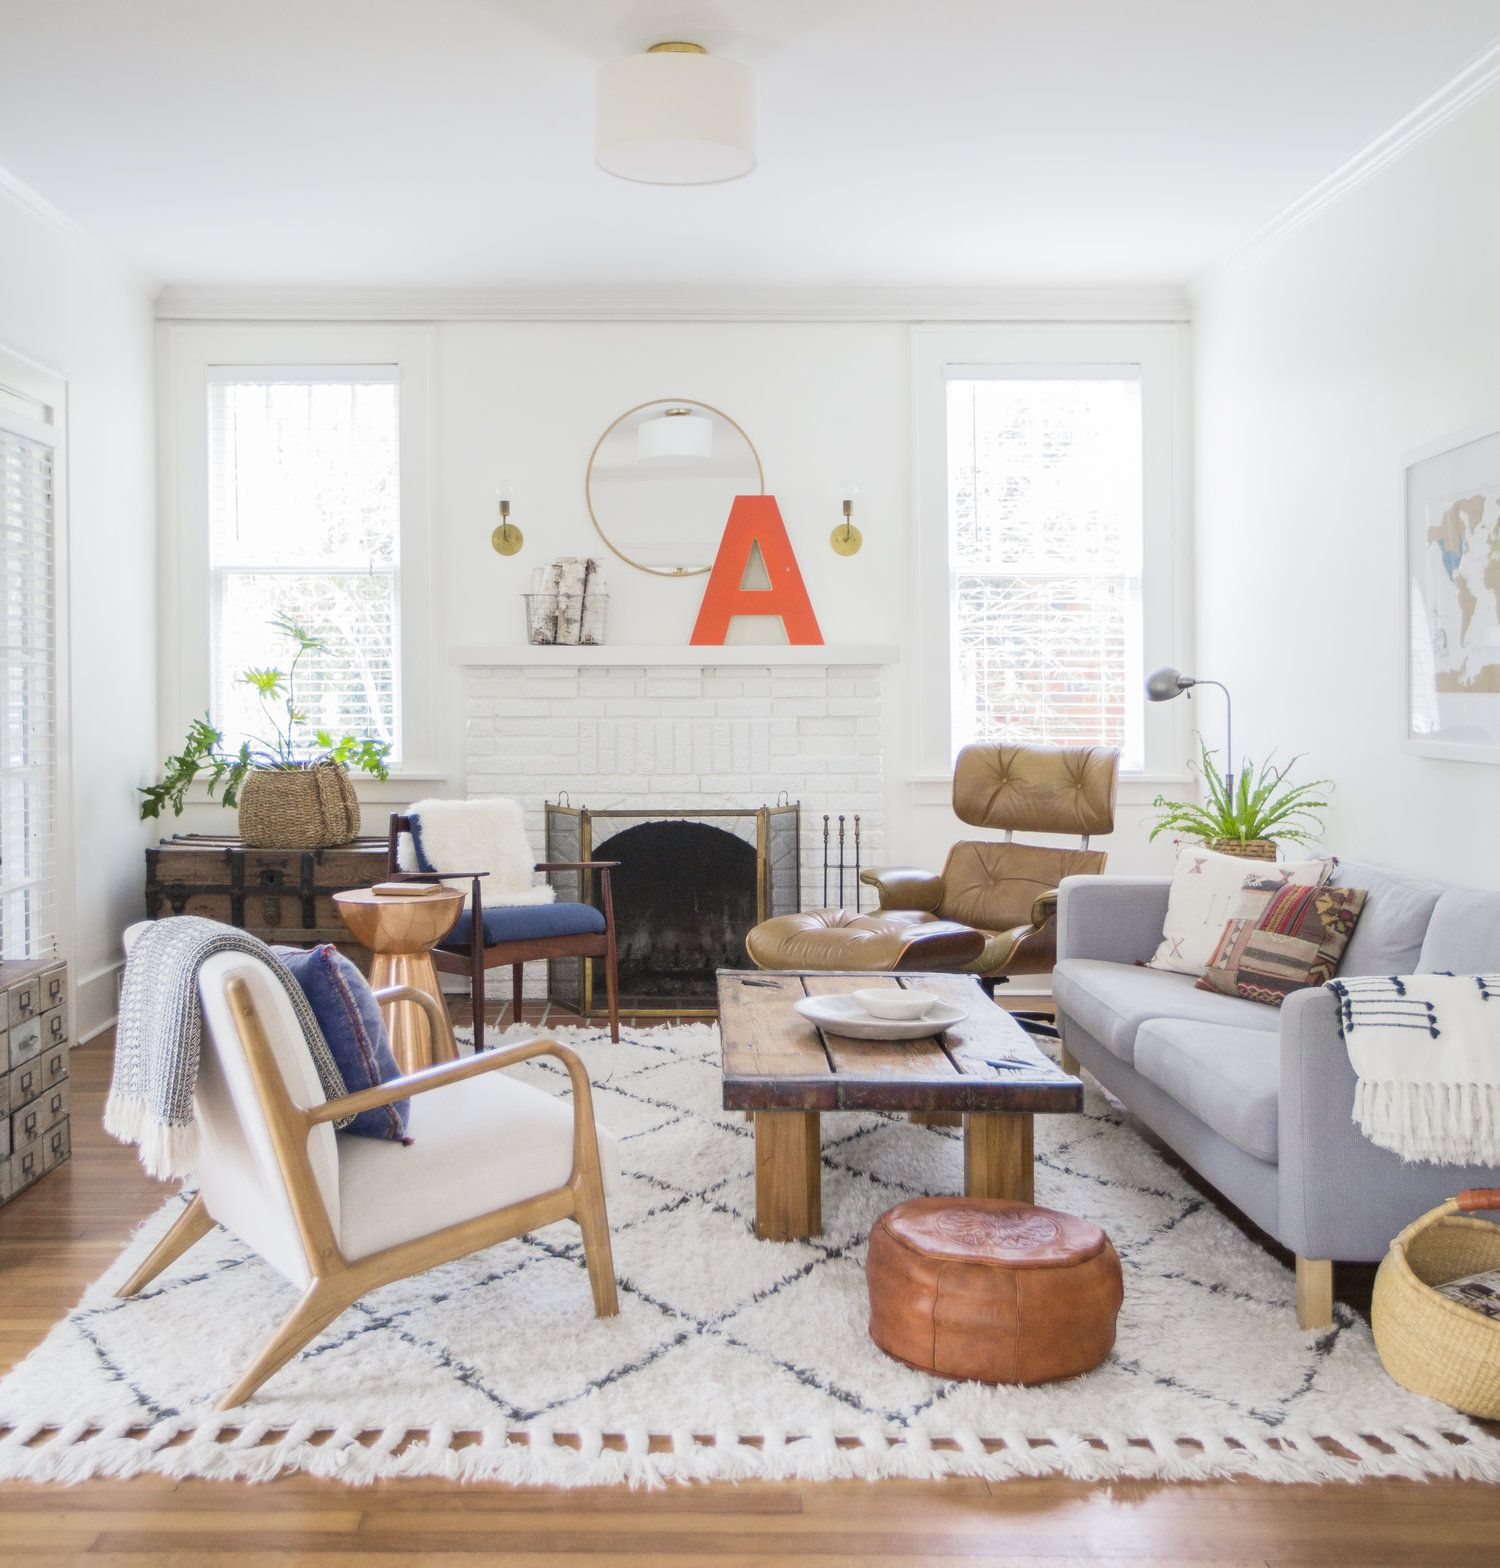 Eclectic White Living Room With Large Shag Boho Area Rug And A White Brick Fireplace Boho Decor Interior Design Bedroom Living Room Designs Livingroom Layout